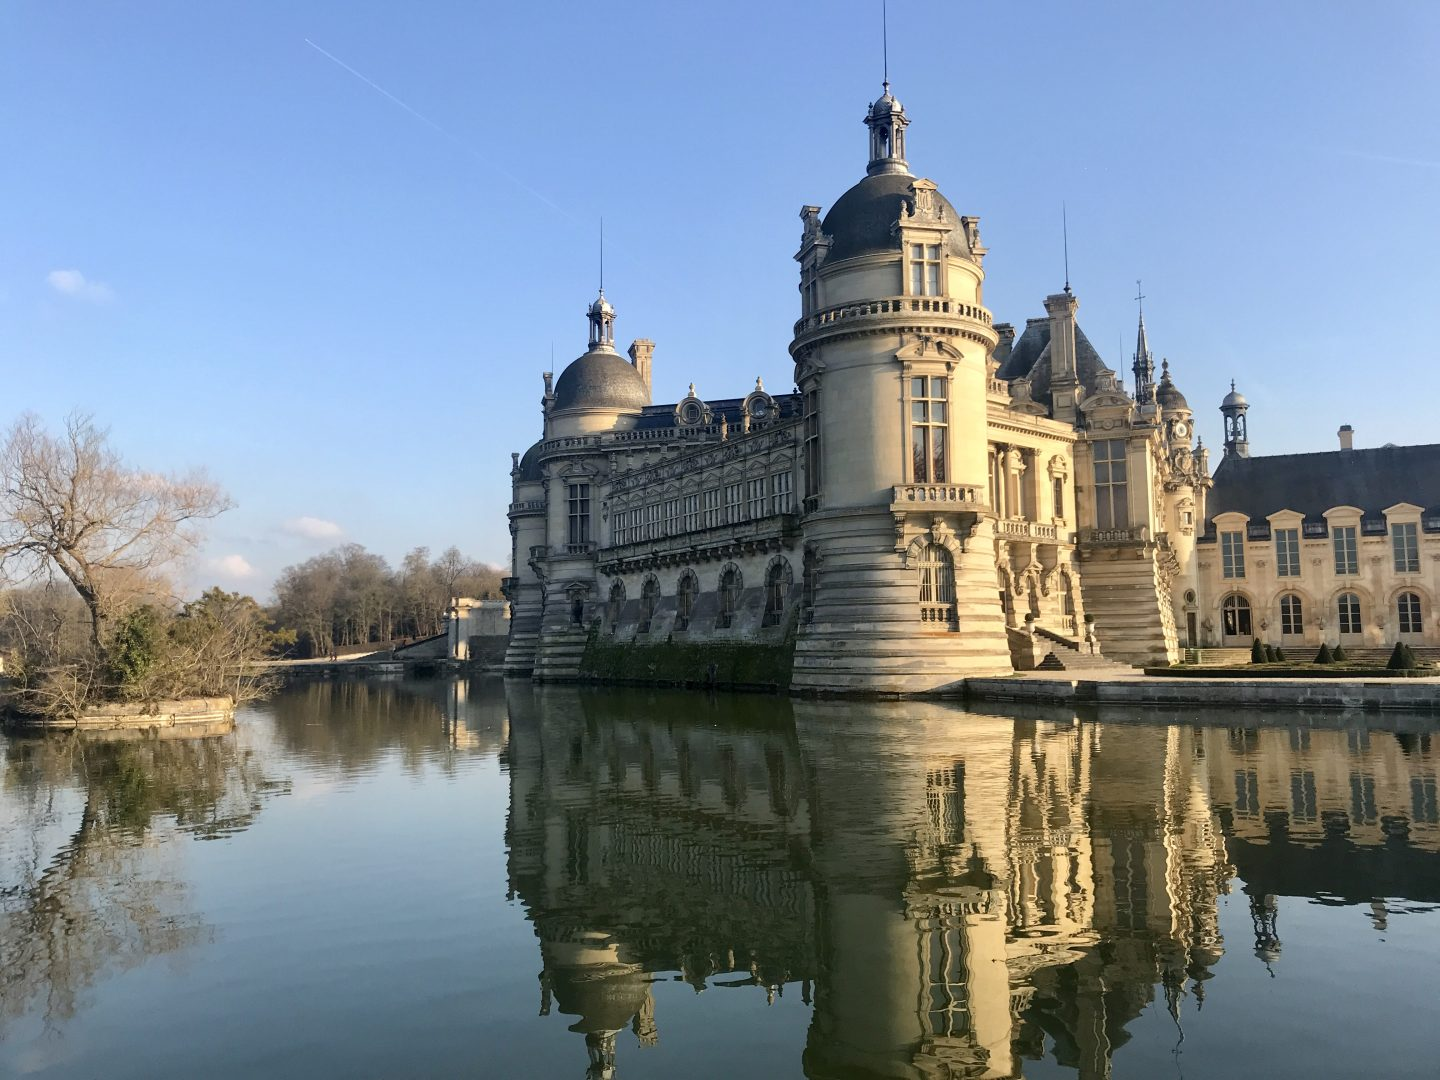 Spending the Day at Château de Chantilly